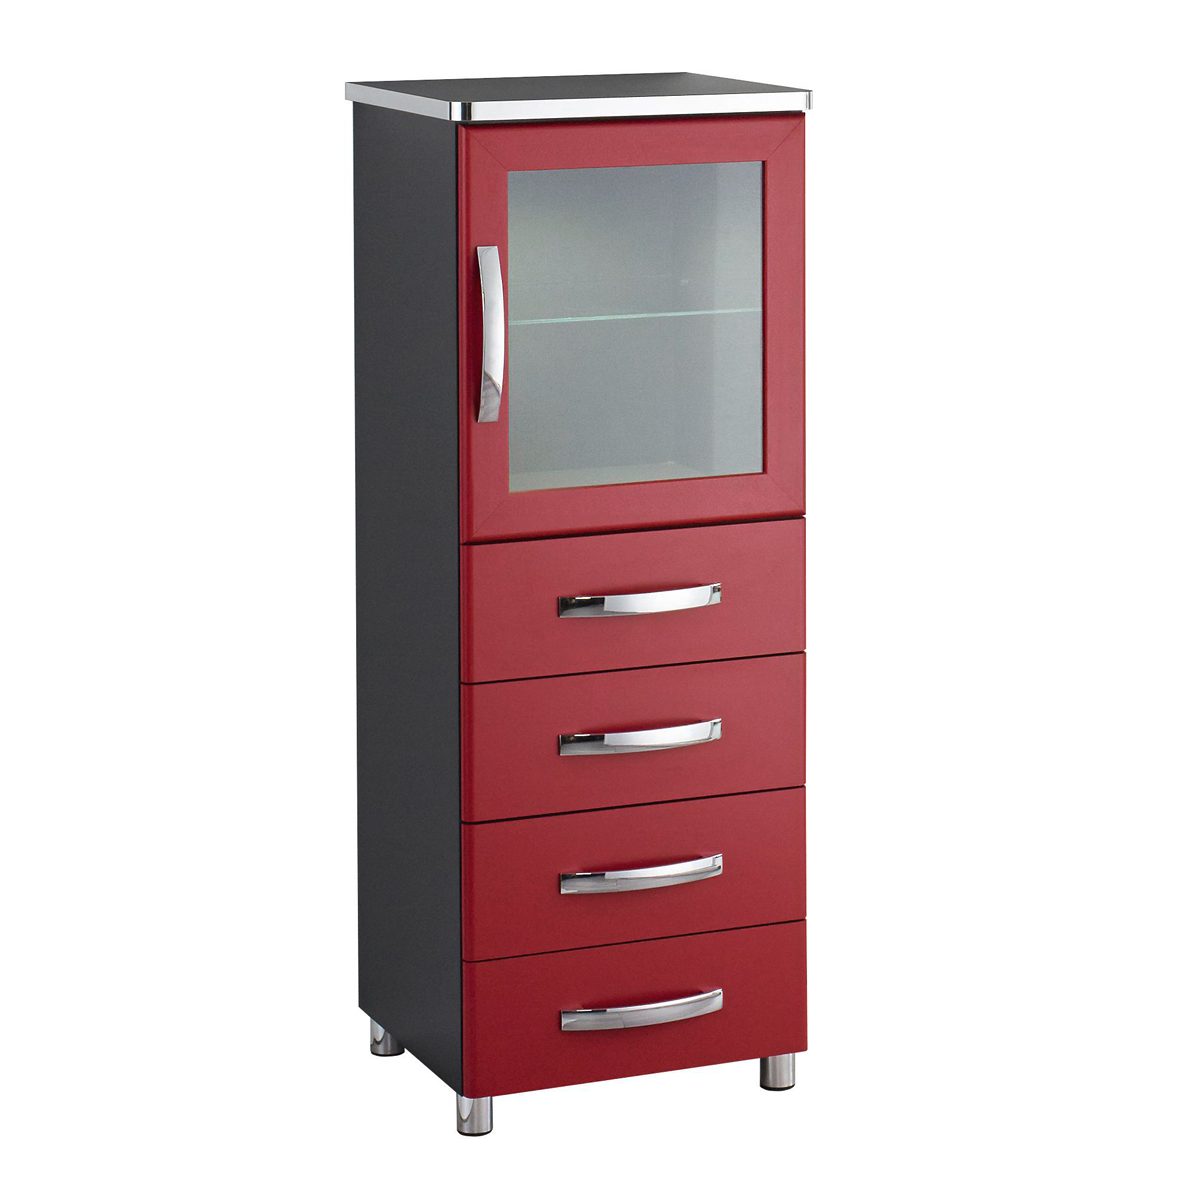 vitrine cubana kommode schrank hochkommode in schwarz rot und chrom. Black Bedroom Furniture Sets. Home Design Ideas